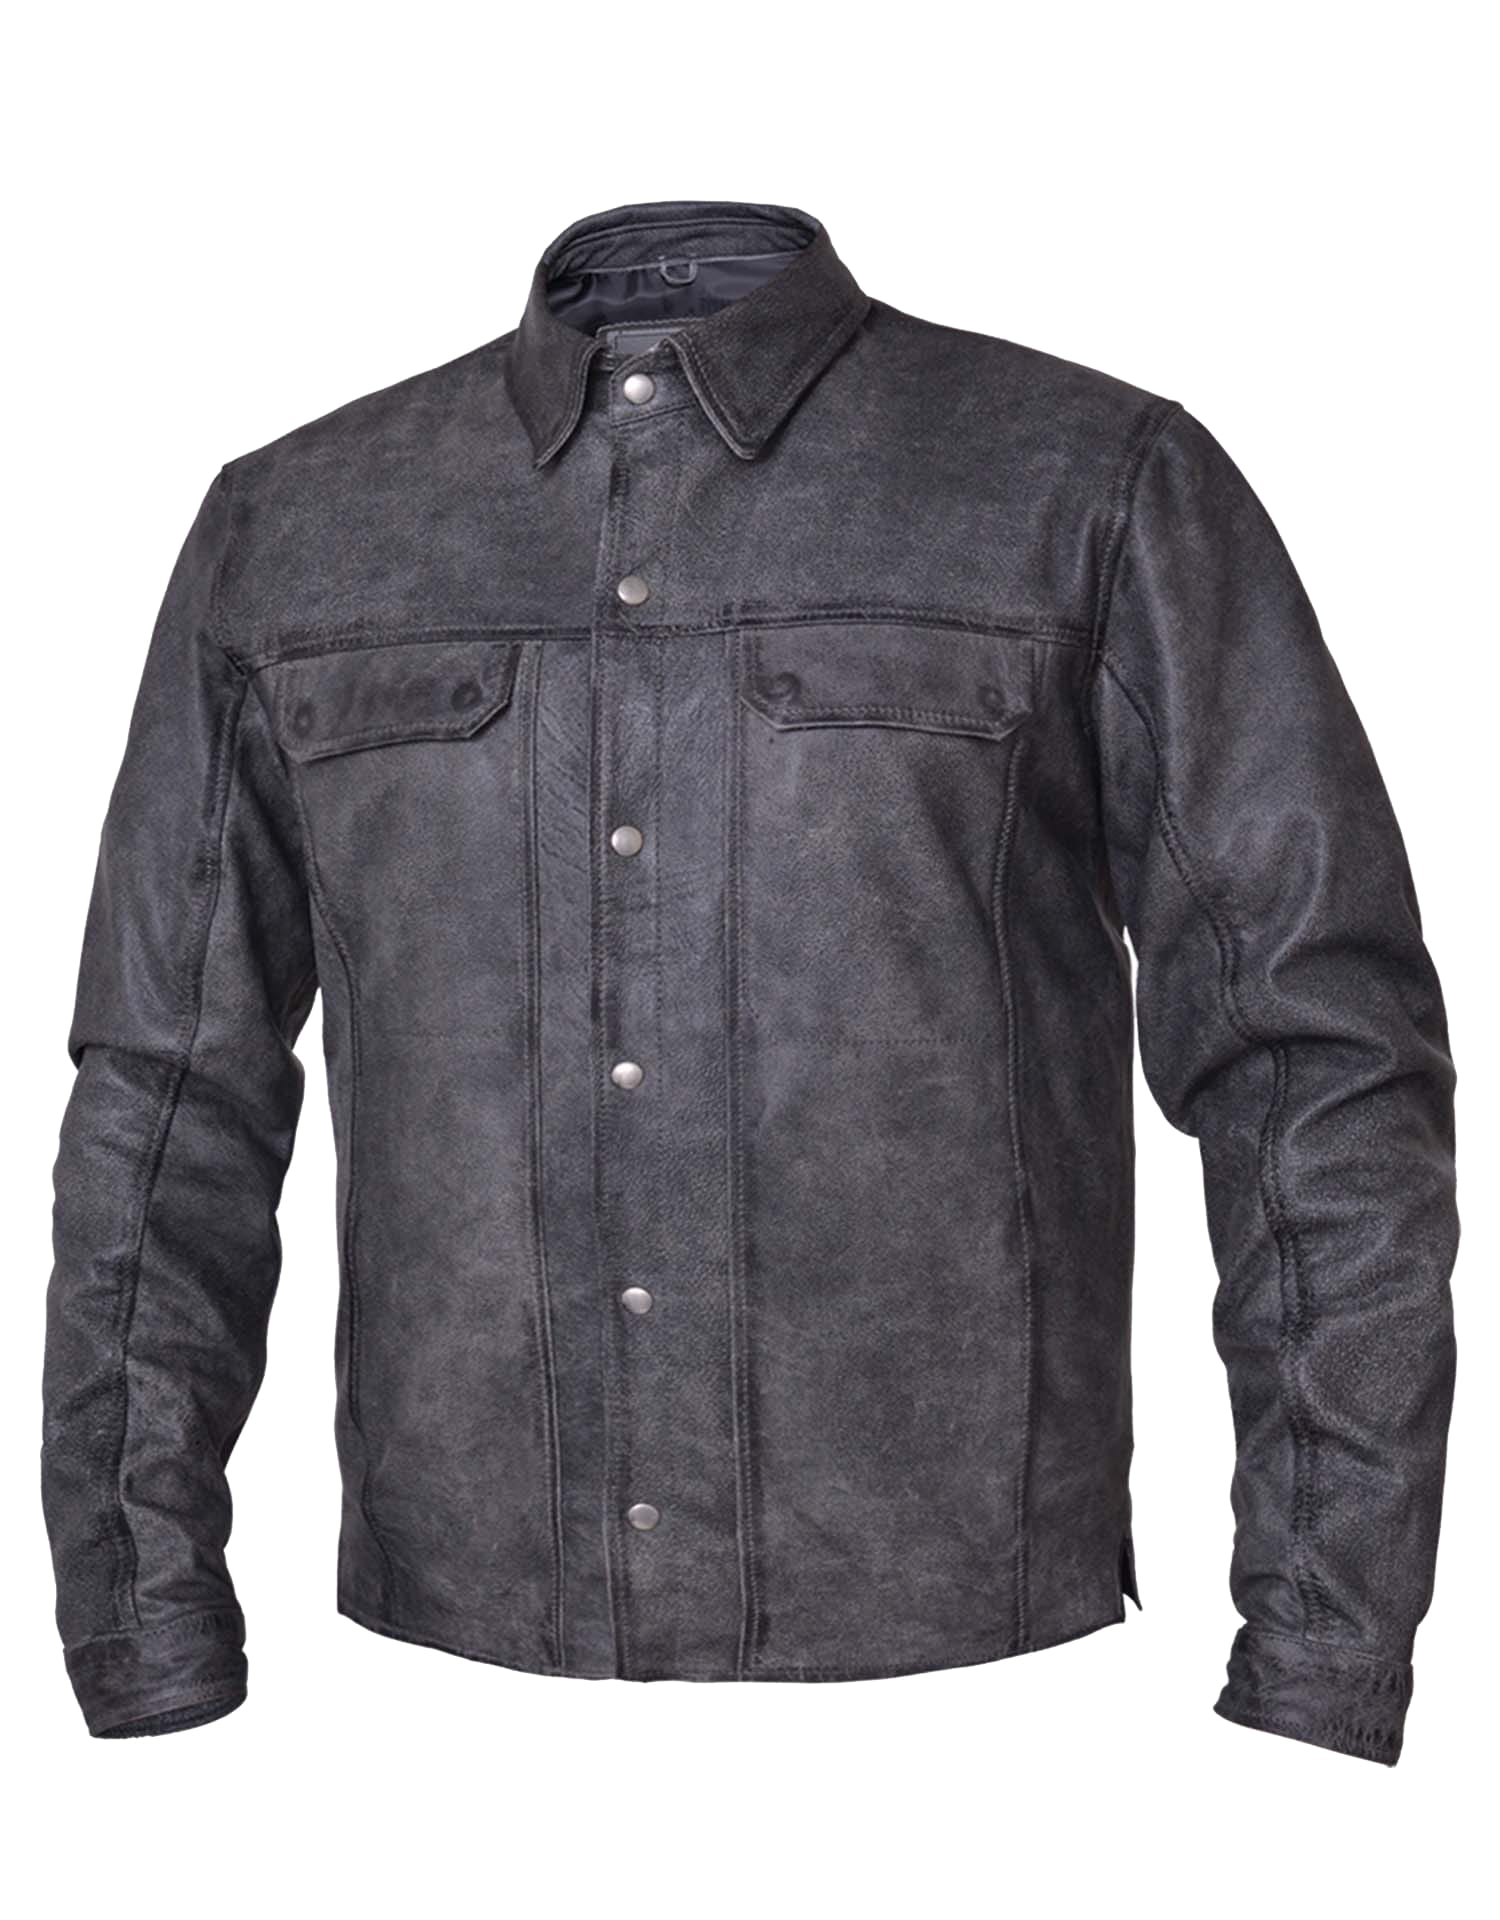 91226e4a4 Men's Premium Lightweight Leather Motorcycle Shirt